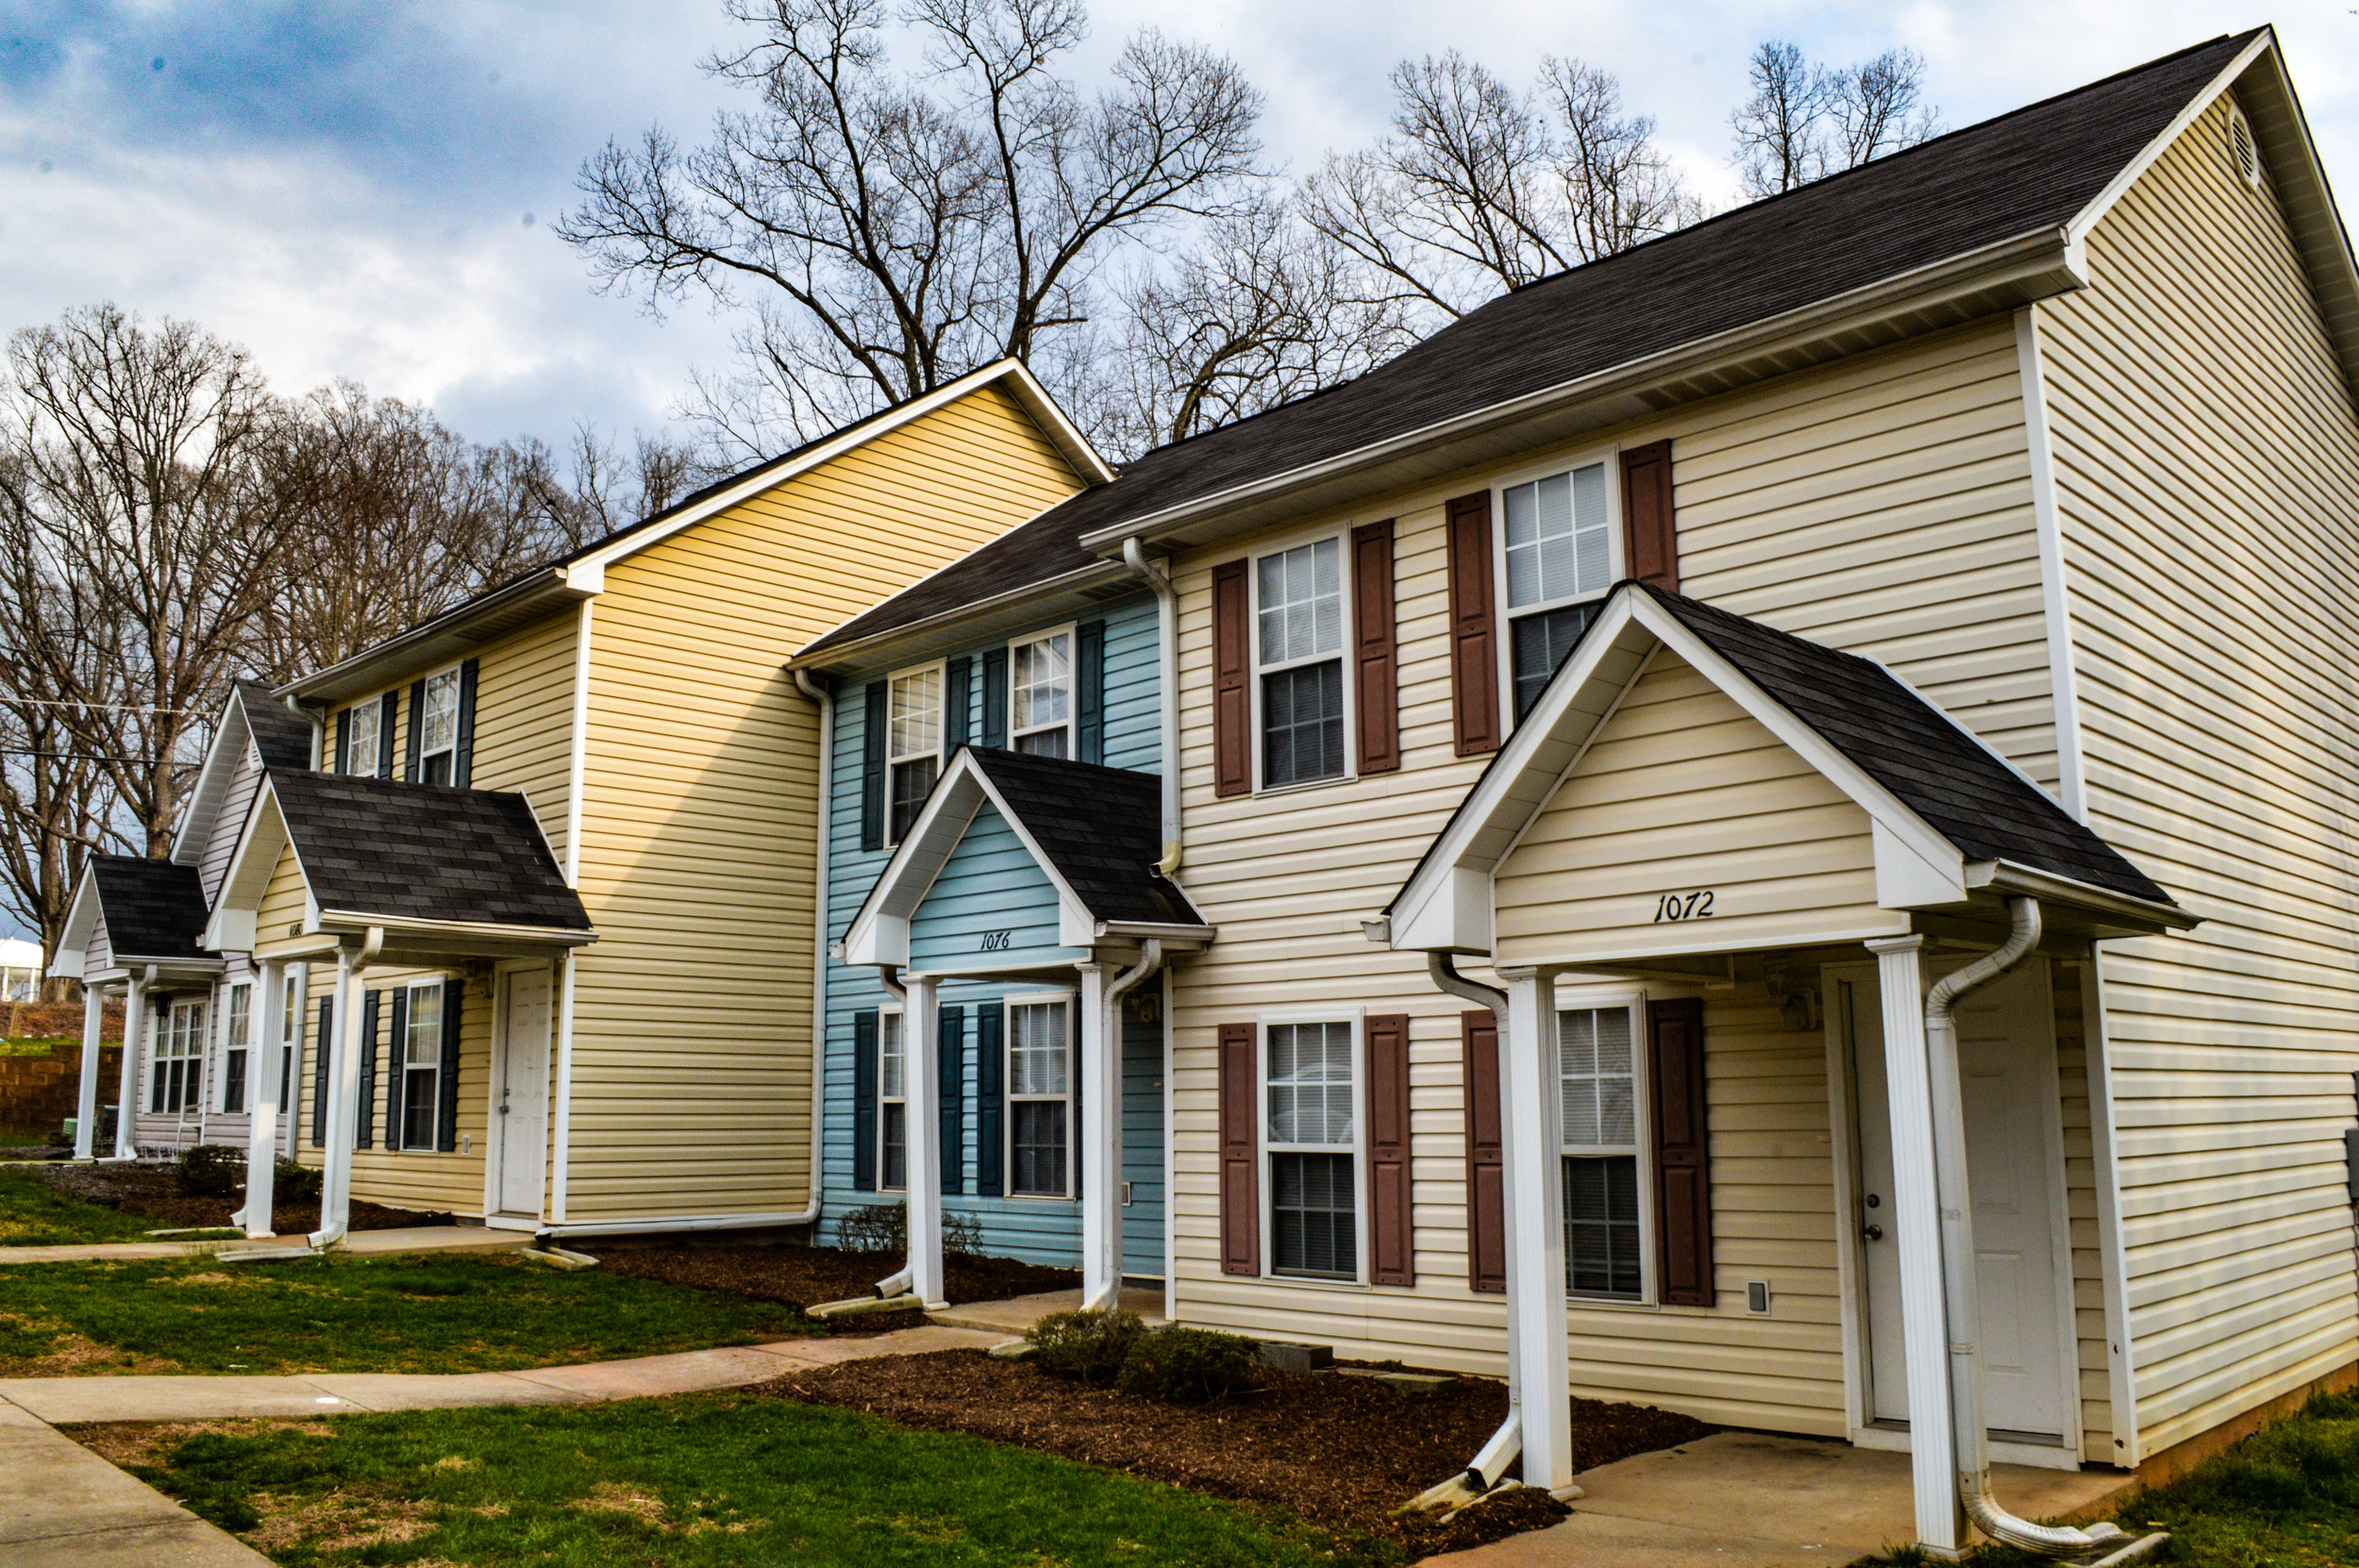 East Ridge Commons/West End Commons Townhome Communities - Statesville 28677